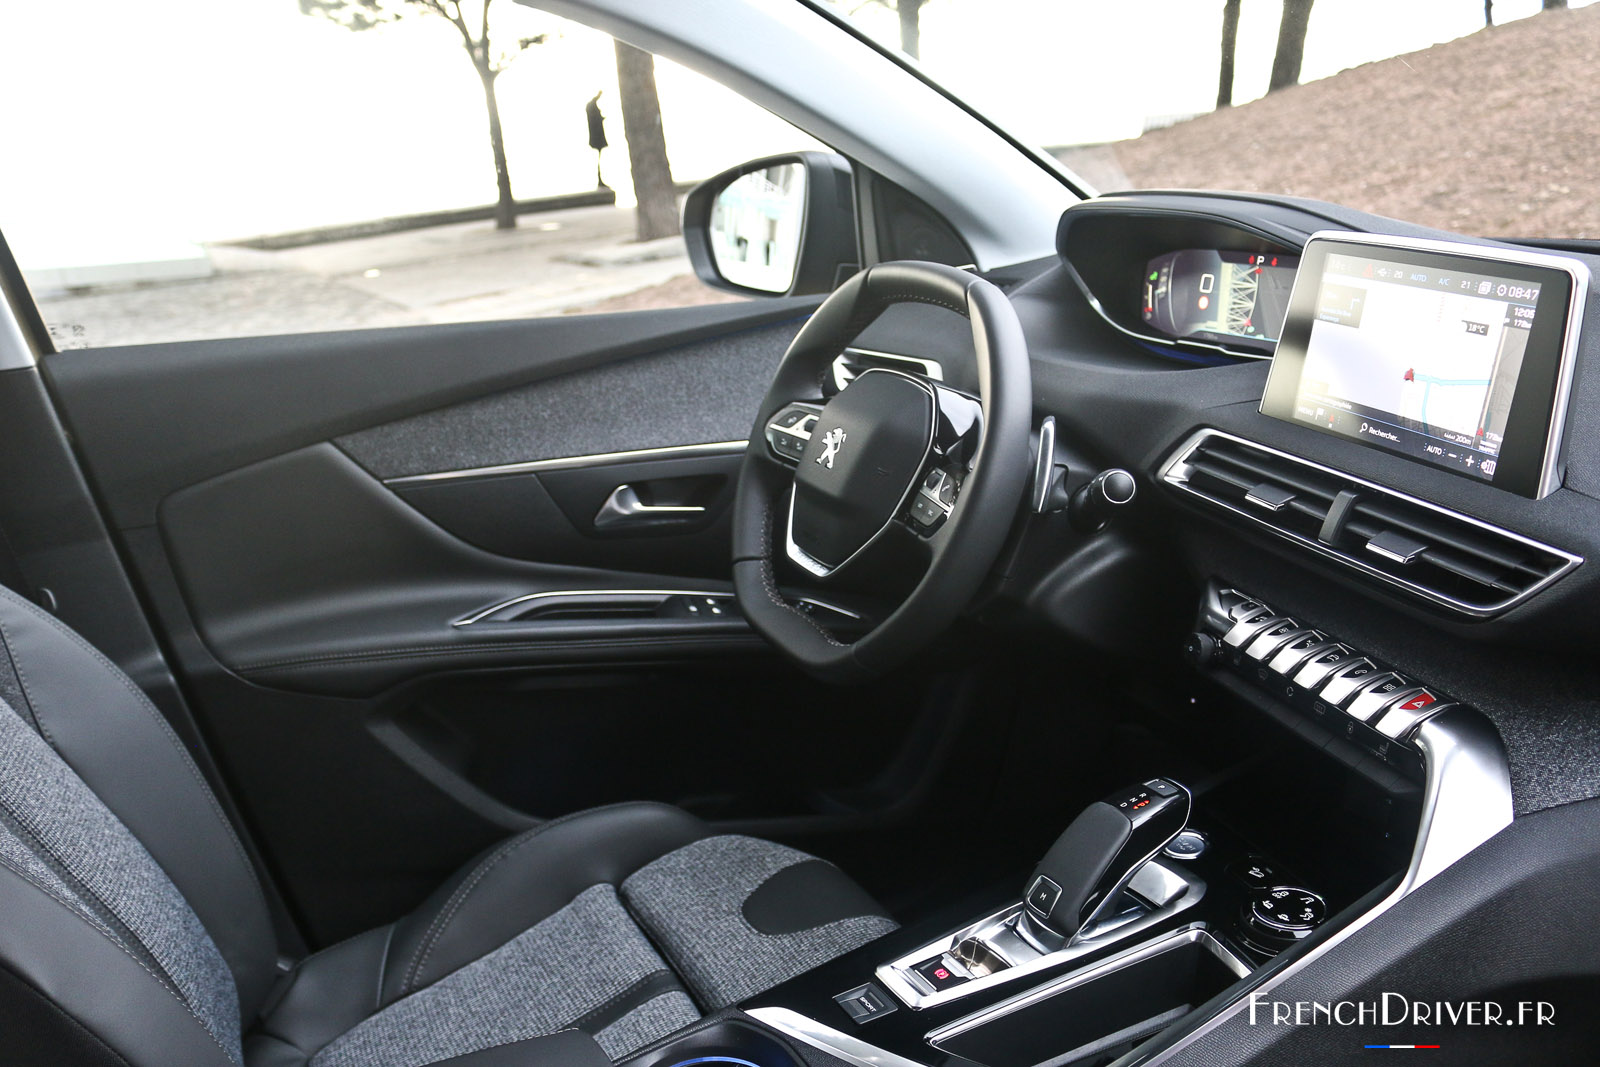 Essai peugeot 5008 ii qui m 39 aime me suv french driver for Photos interieur